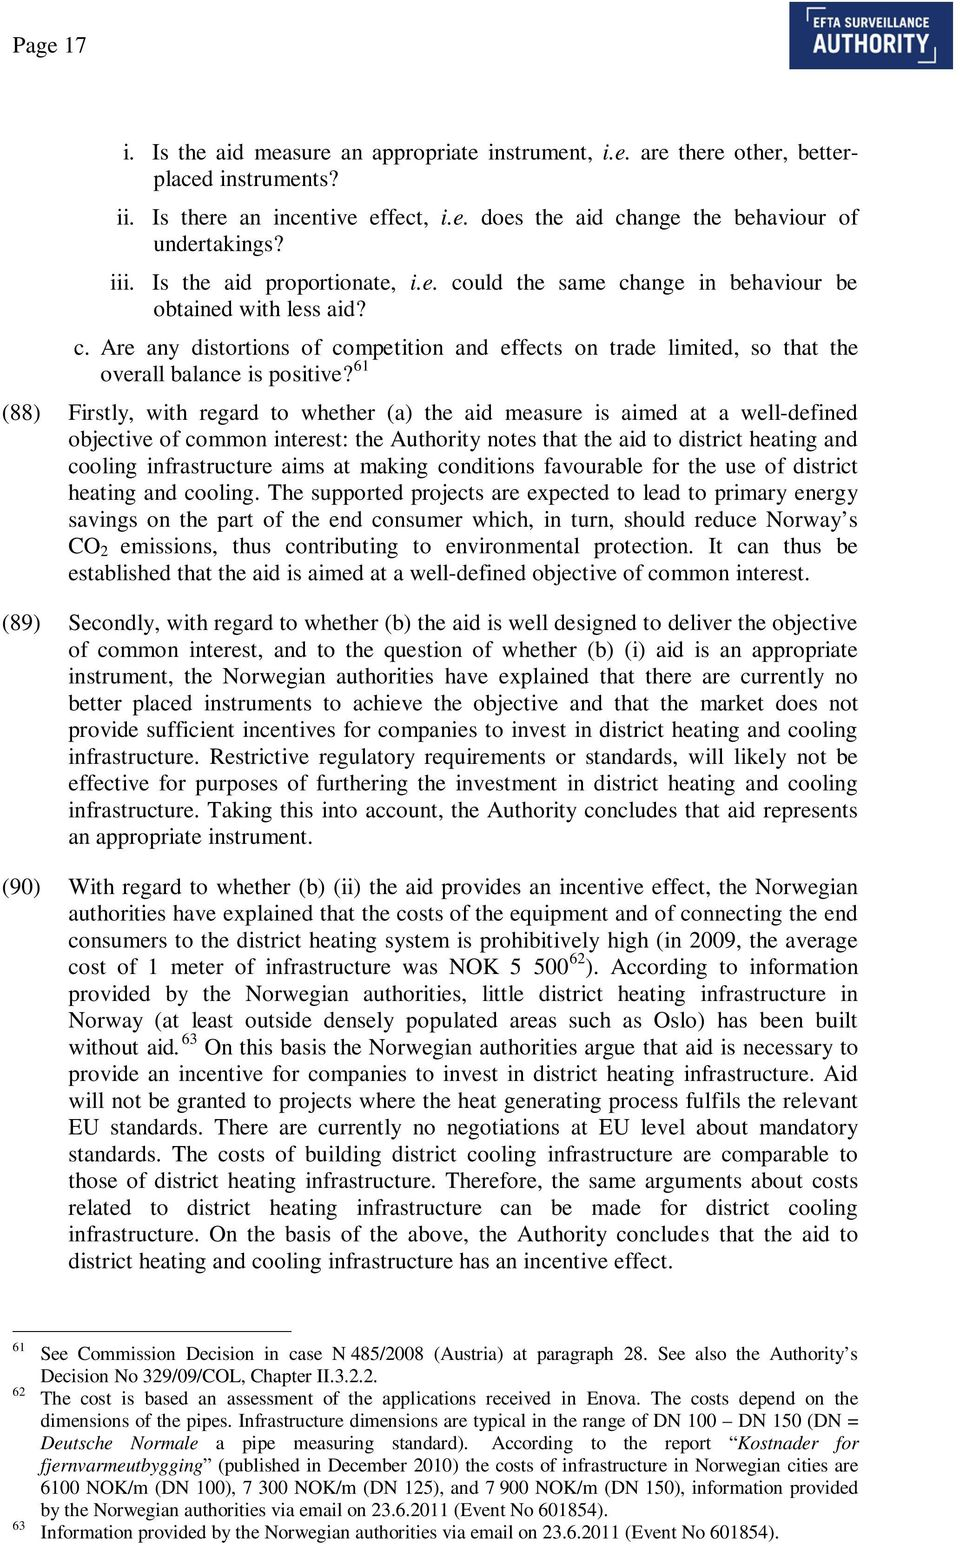 61 (88) Firstly, with regard to whether (a) the aid measure is aimed at a well-defined objective of common interest: the Authority notes that the aid to district heating and cooling infrastructure